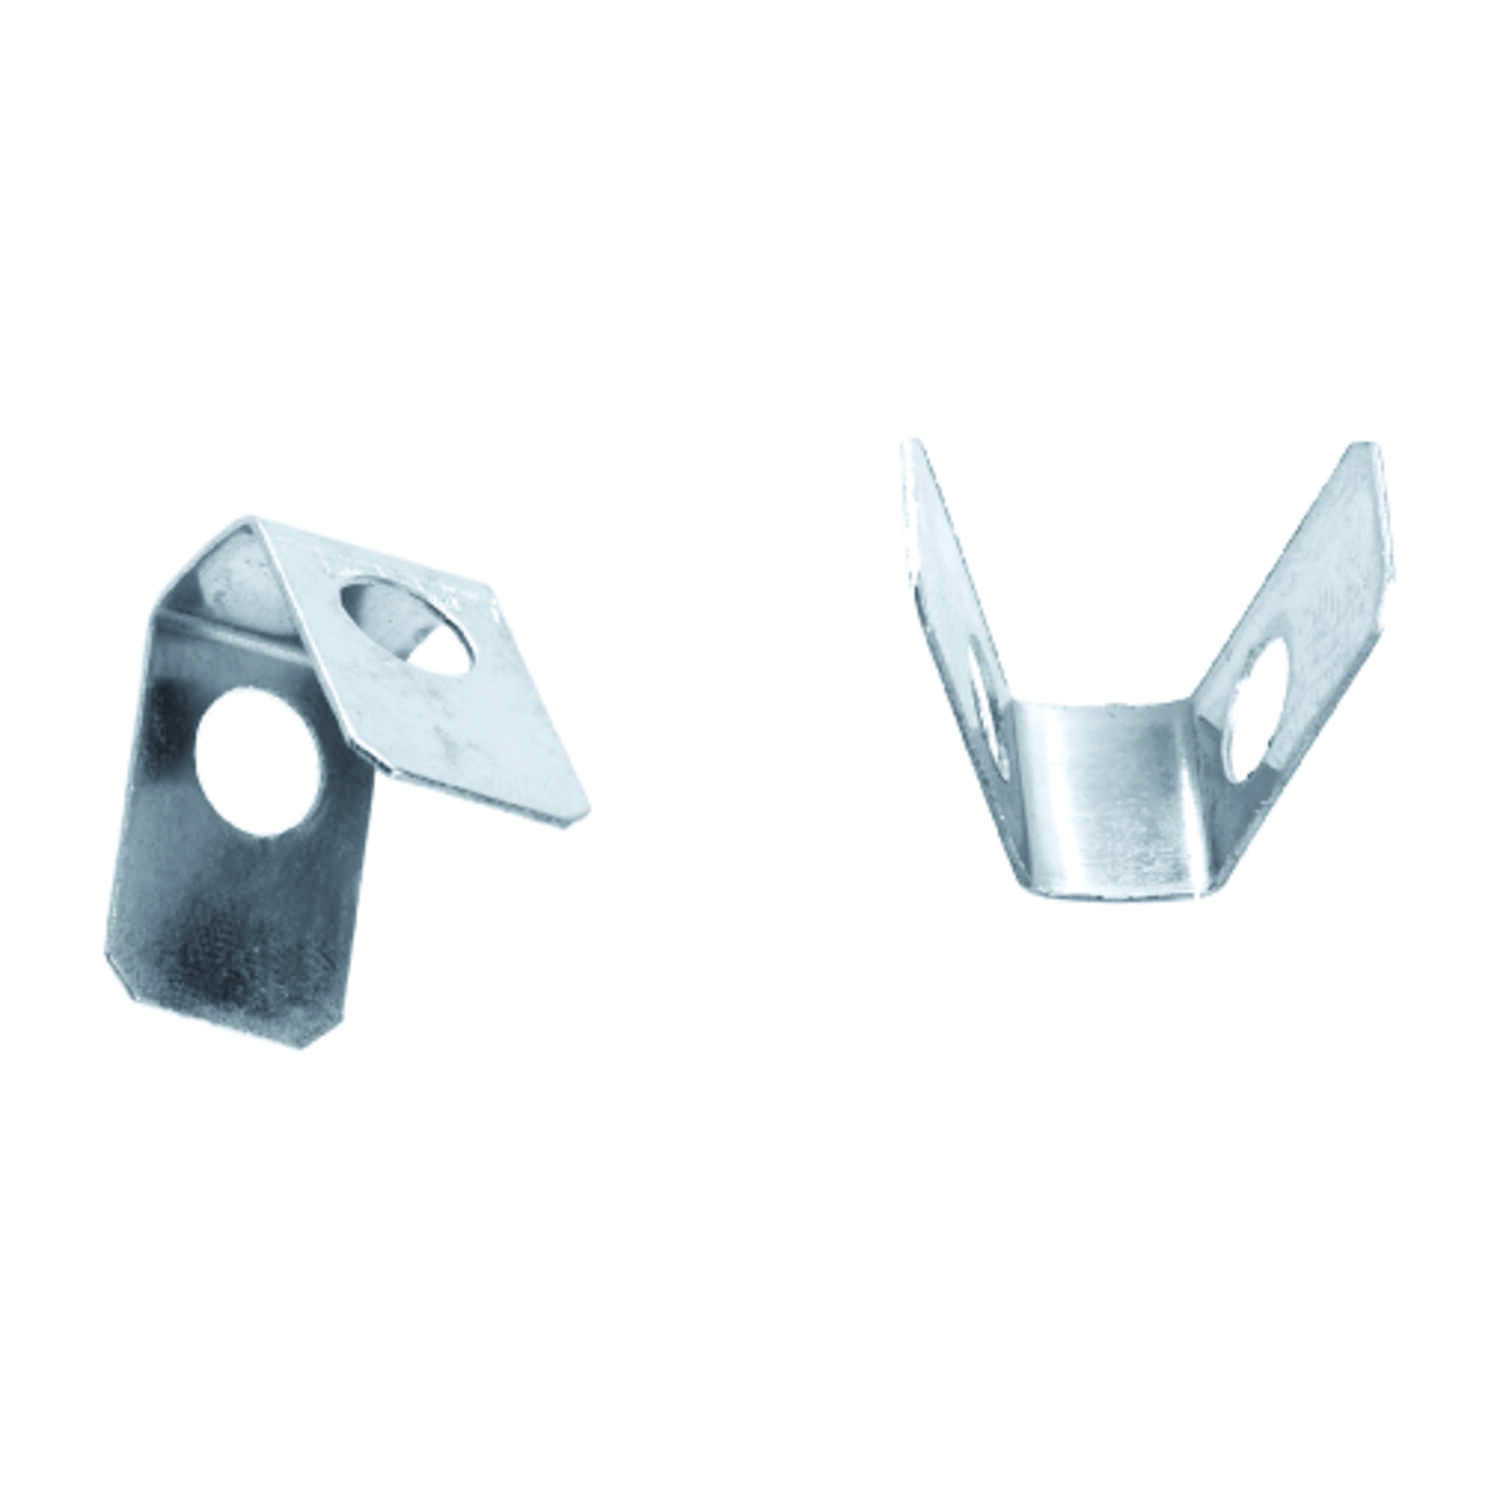 Danco  Steel  Hot and Cold  Clevis Clip